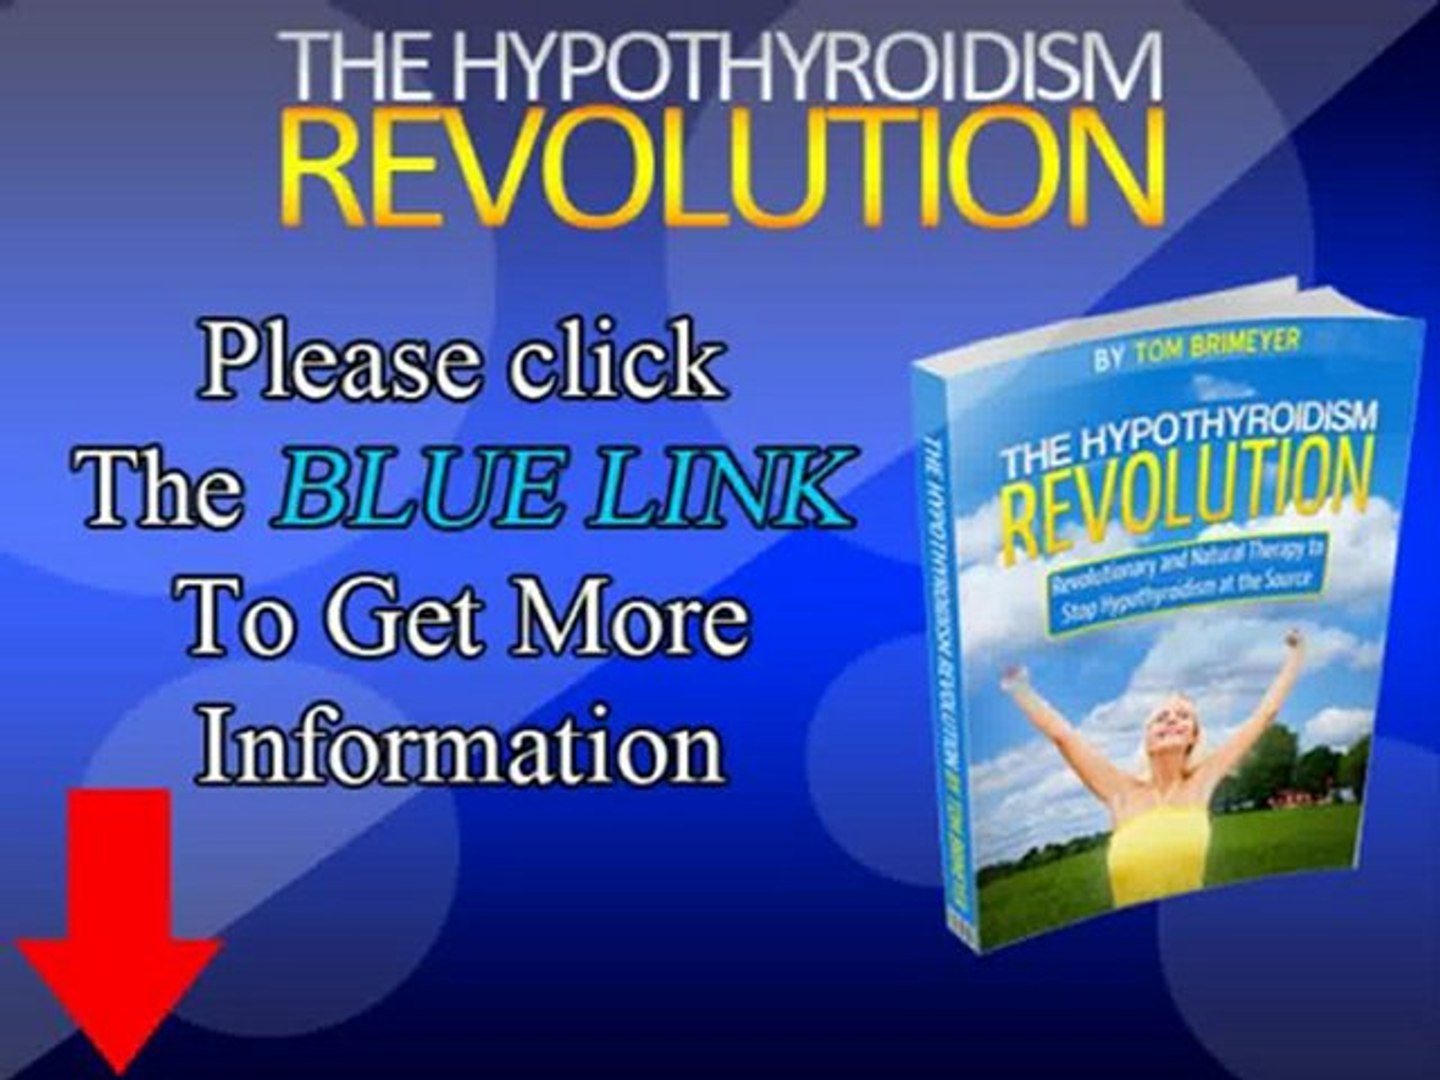 How to Cure Hypothyroidism - How To Treat Hypothyroidism Naturally